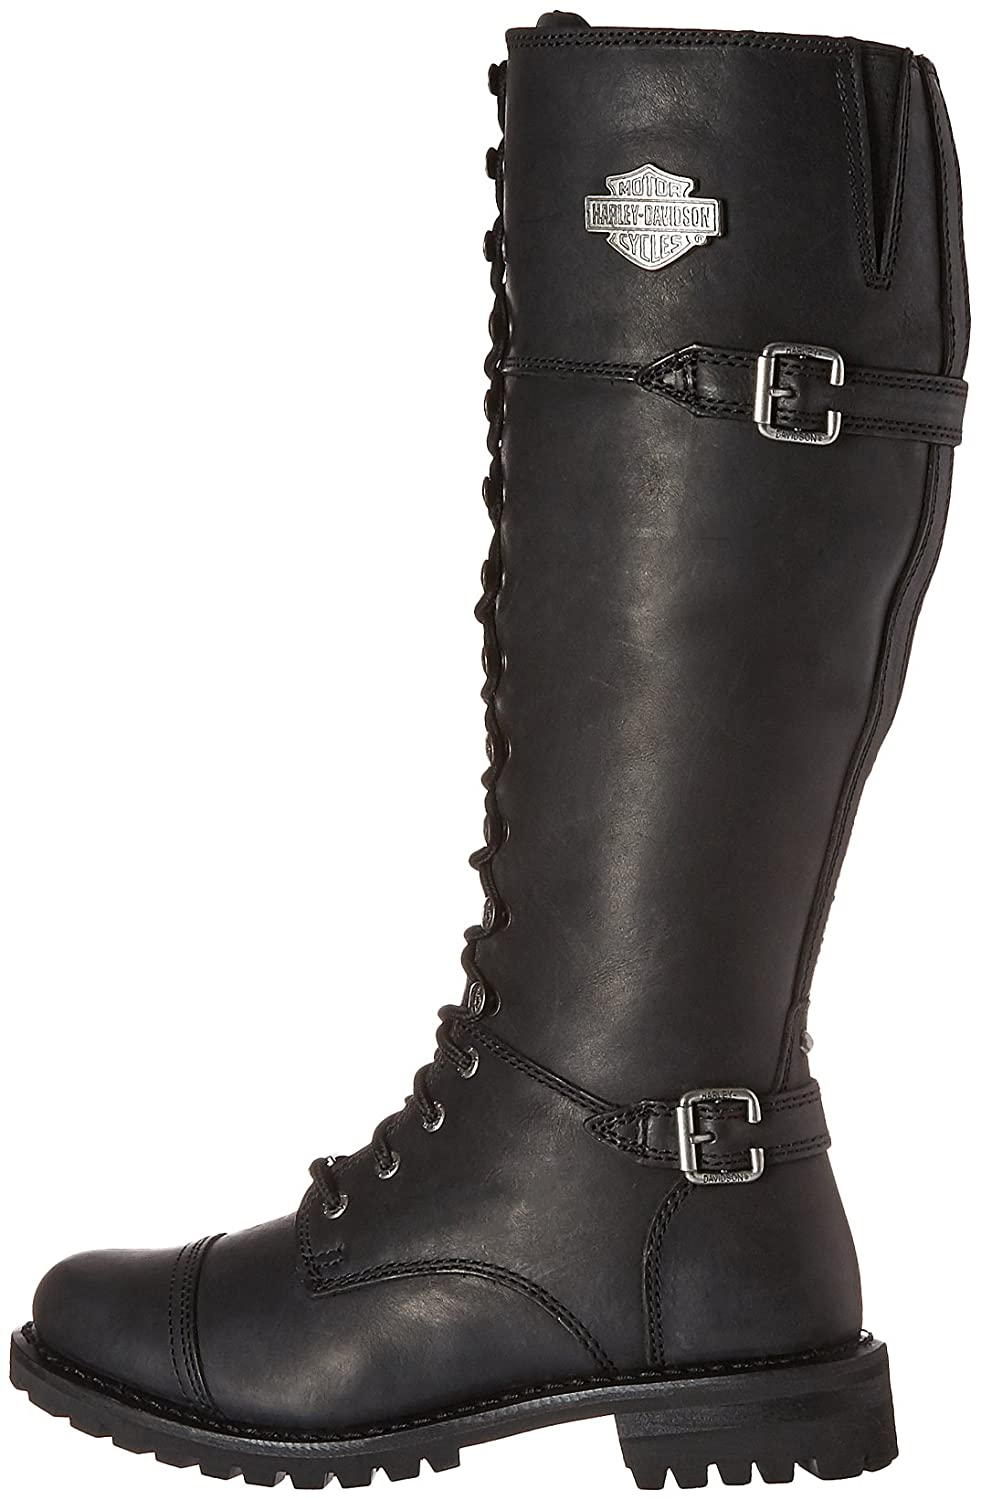 Harley-Davidson Women's Beechwood Work Boot B071L115MF 6 C/D US|Black